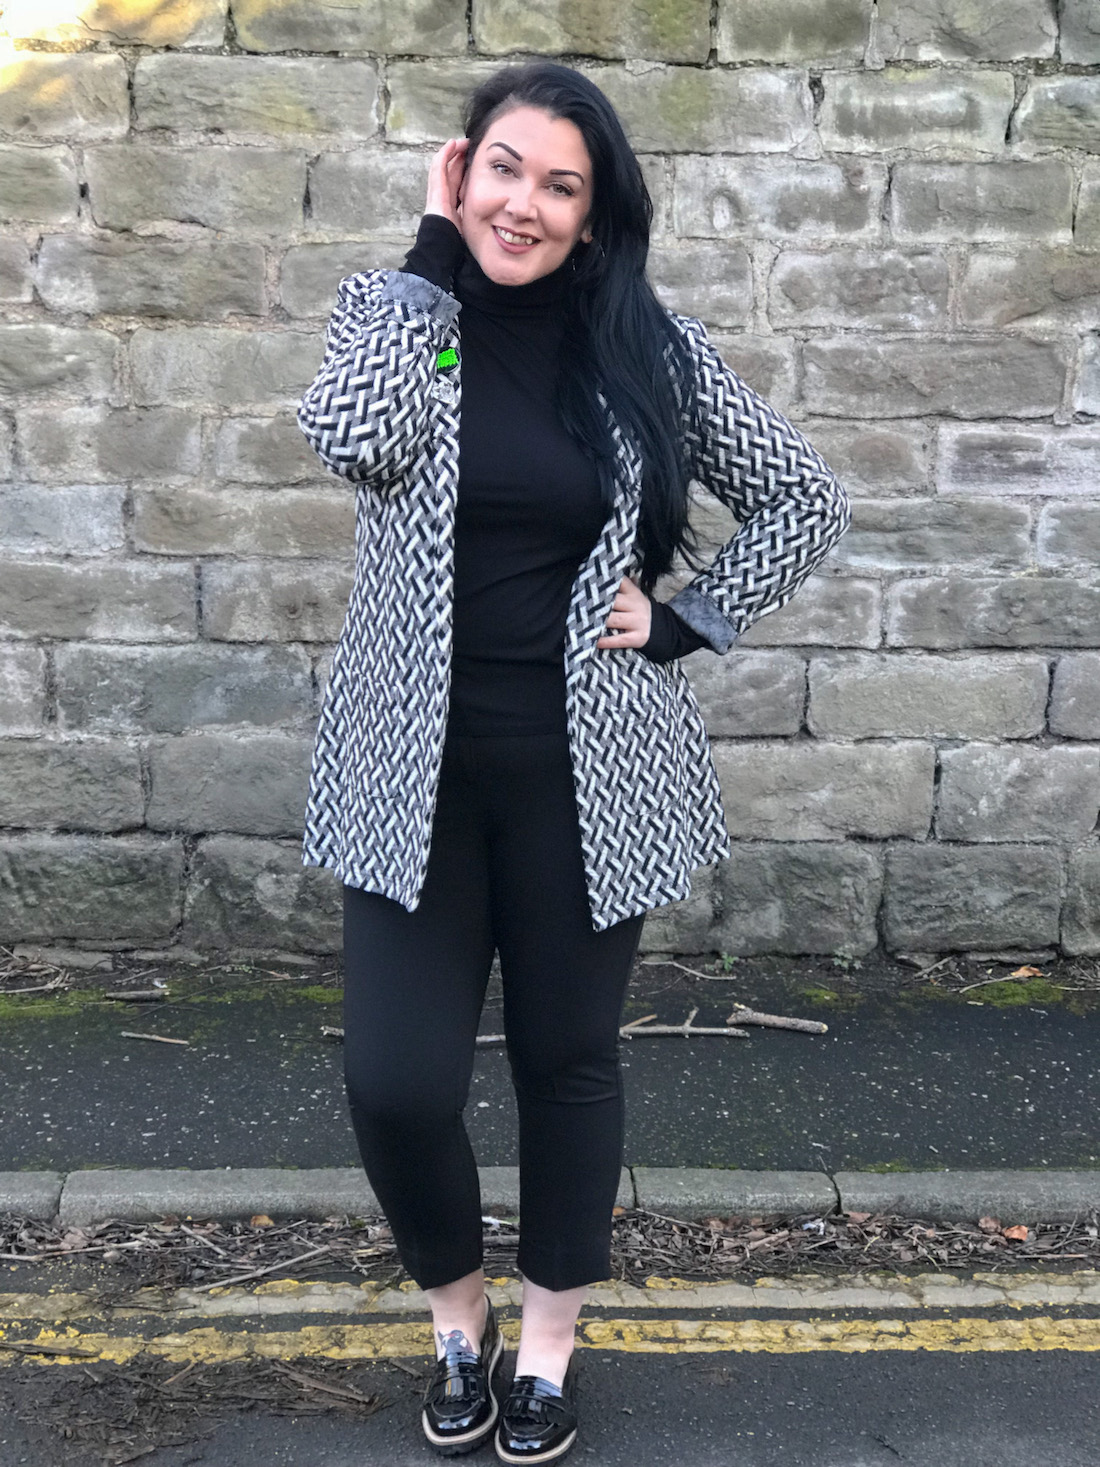 Smart Casual Plus Size Outfit from Damart